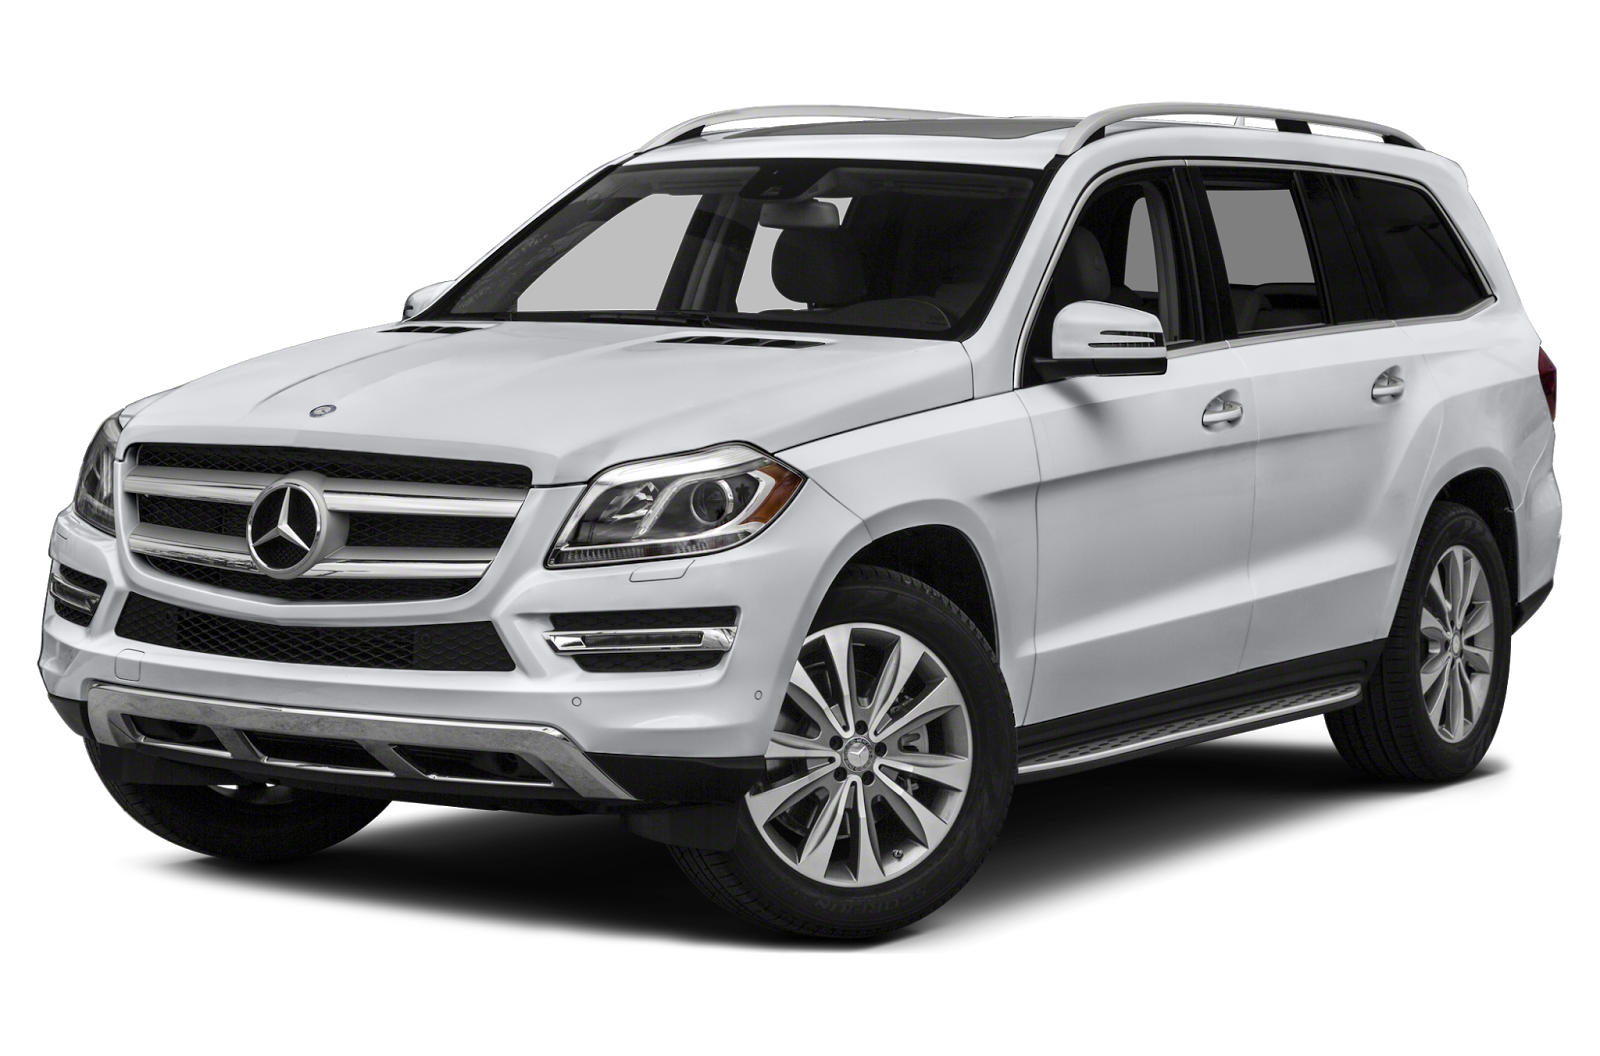 2015 Mercedes-Benz GL-Class High Resolution Pictures